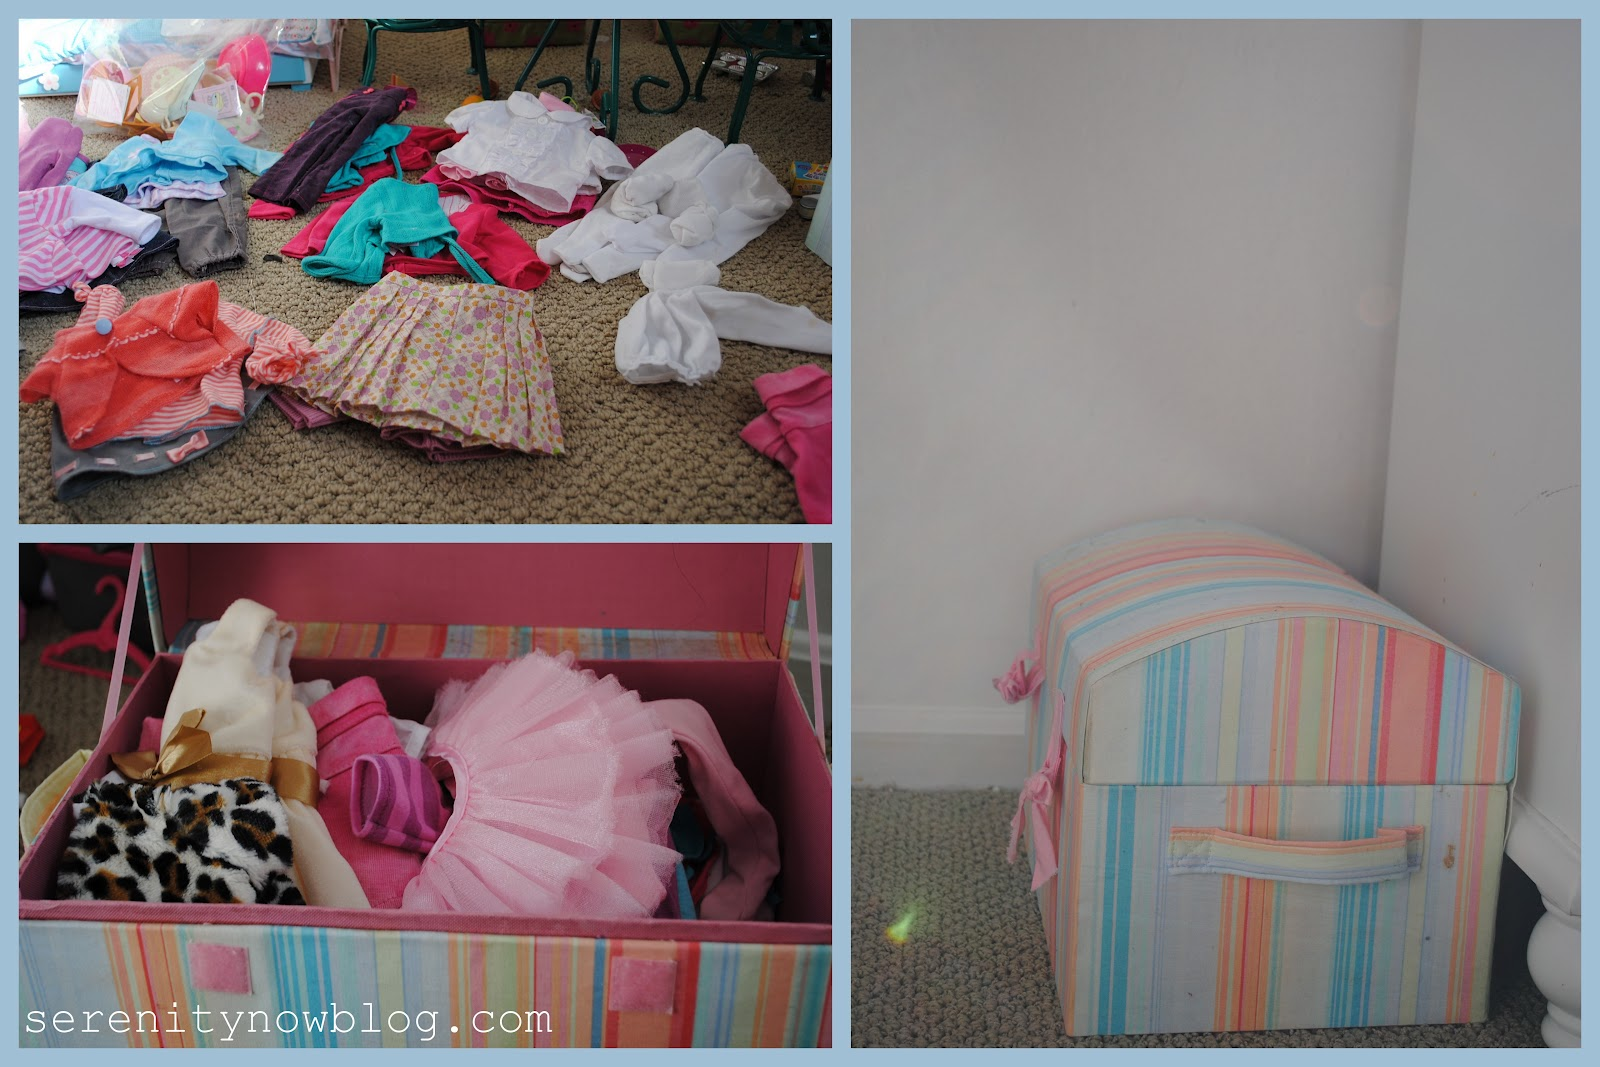 All The Clothes For The Larger Dolls Were Organized And Placed Back In The  Girlsu0027 Doll Trunk.